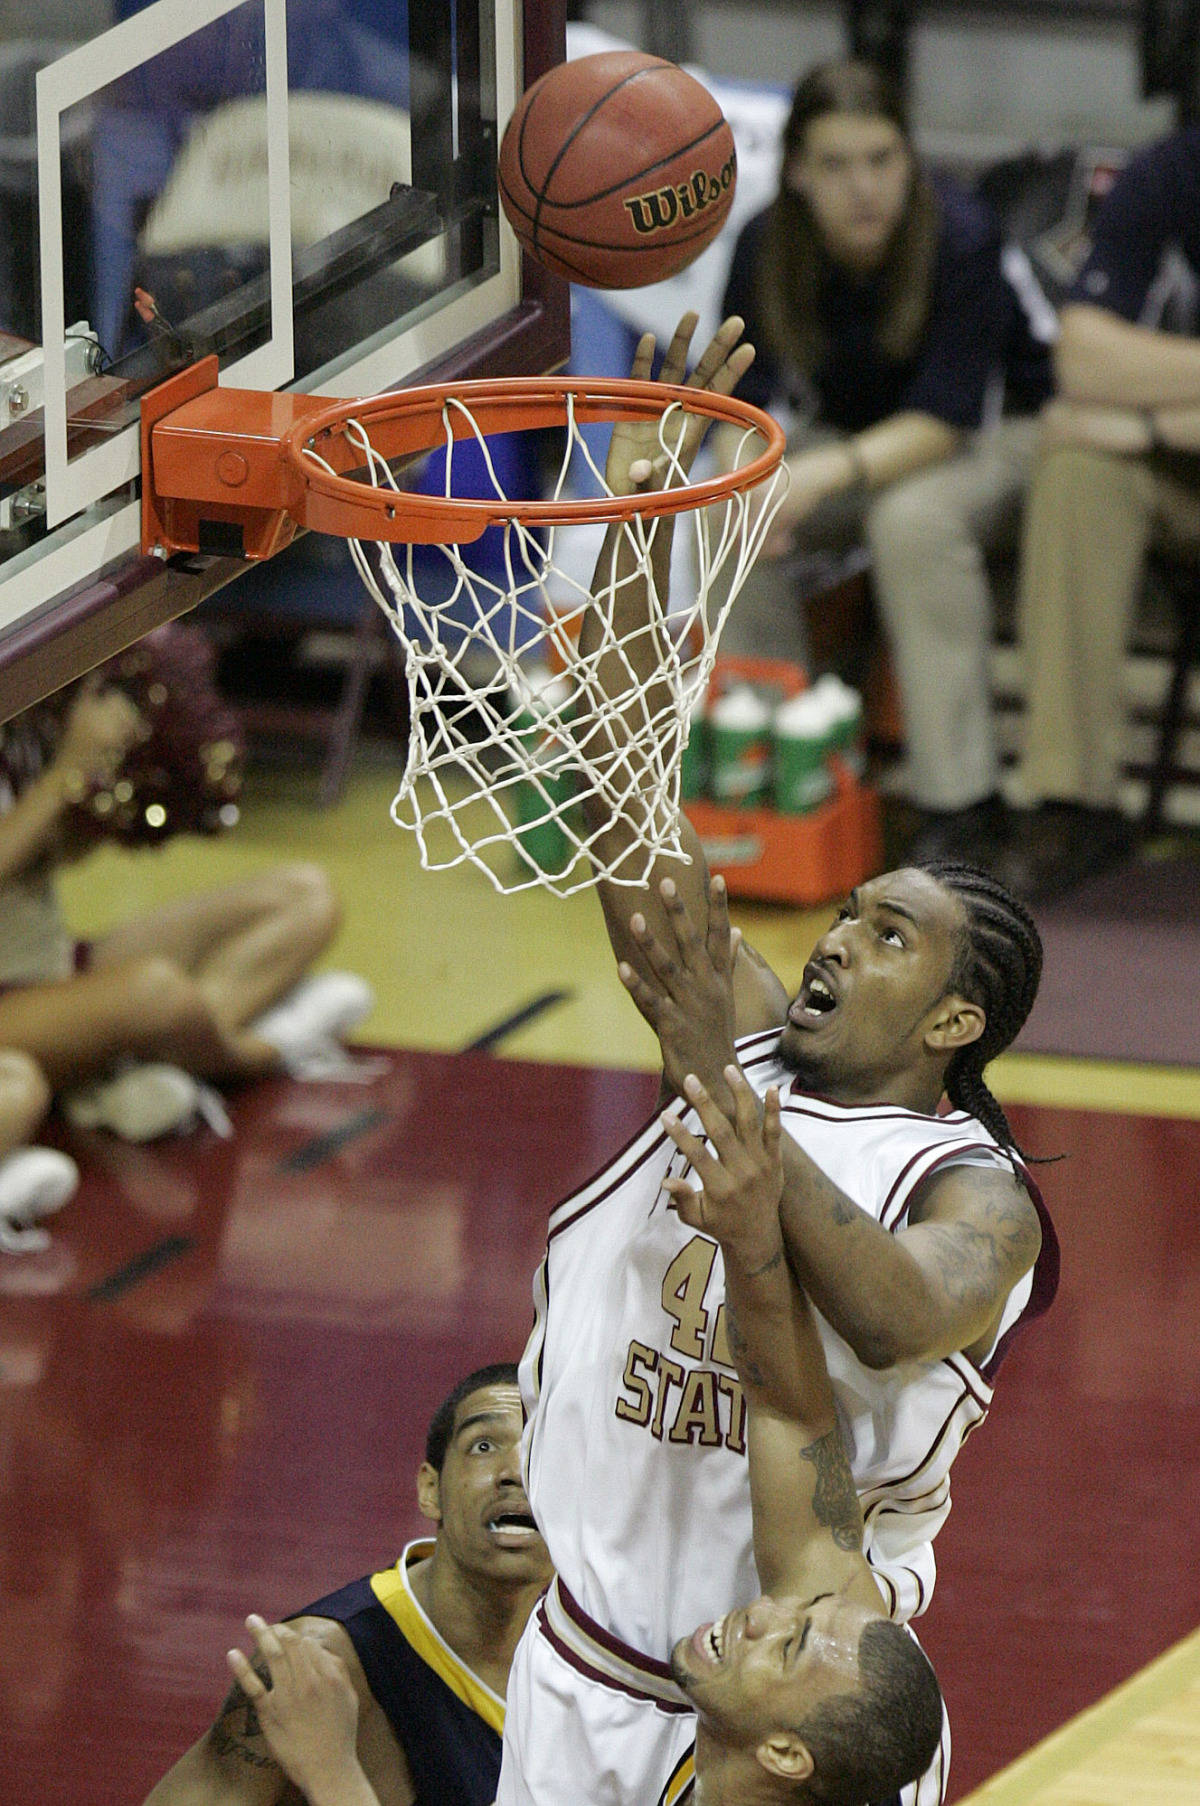 Florida State's Ryan Reid splits Toledo's defense. (AP Photo/Steve Cannon)